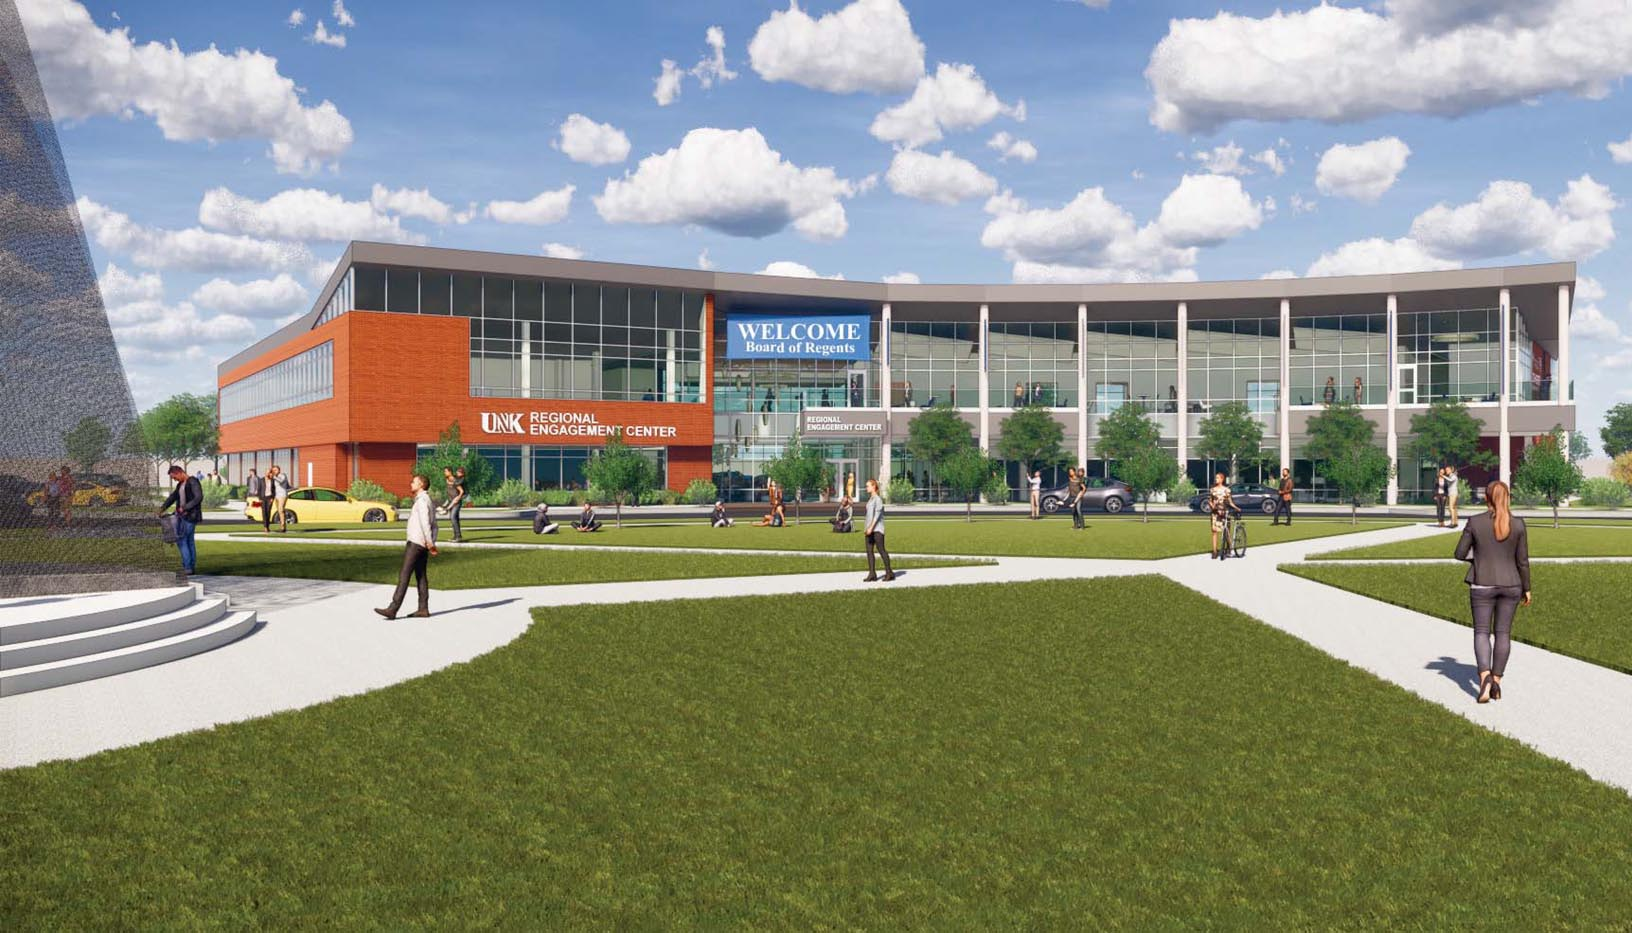 A 49,000-square-foot Regional Engagement and Alumni Center will be built on UNK's University Village development. The $15.6 million project is expected to be complete in summer 2022.